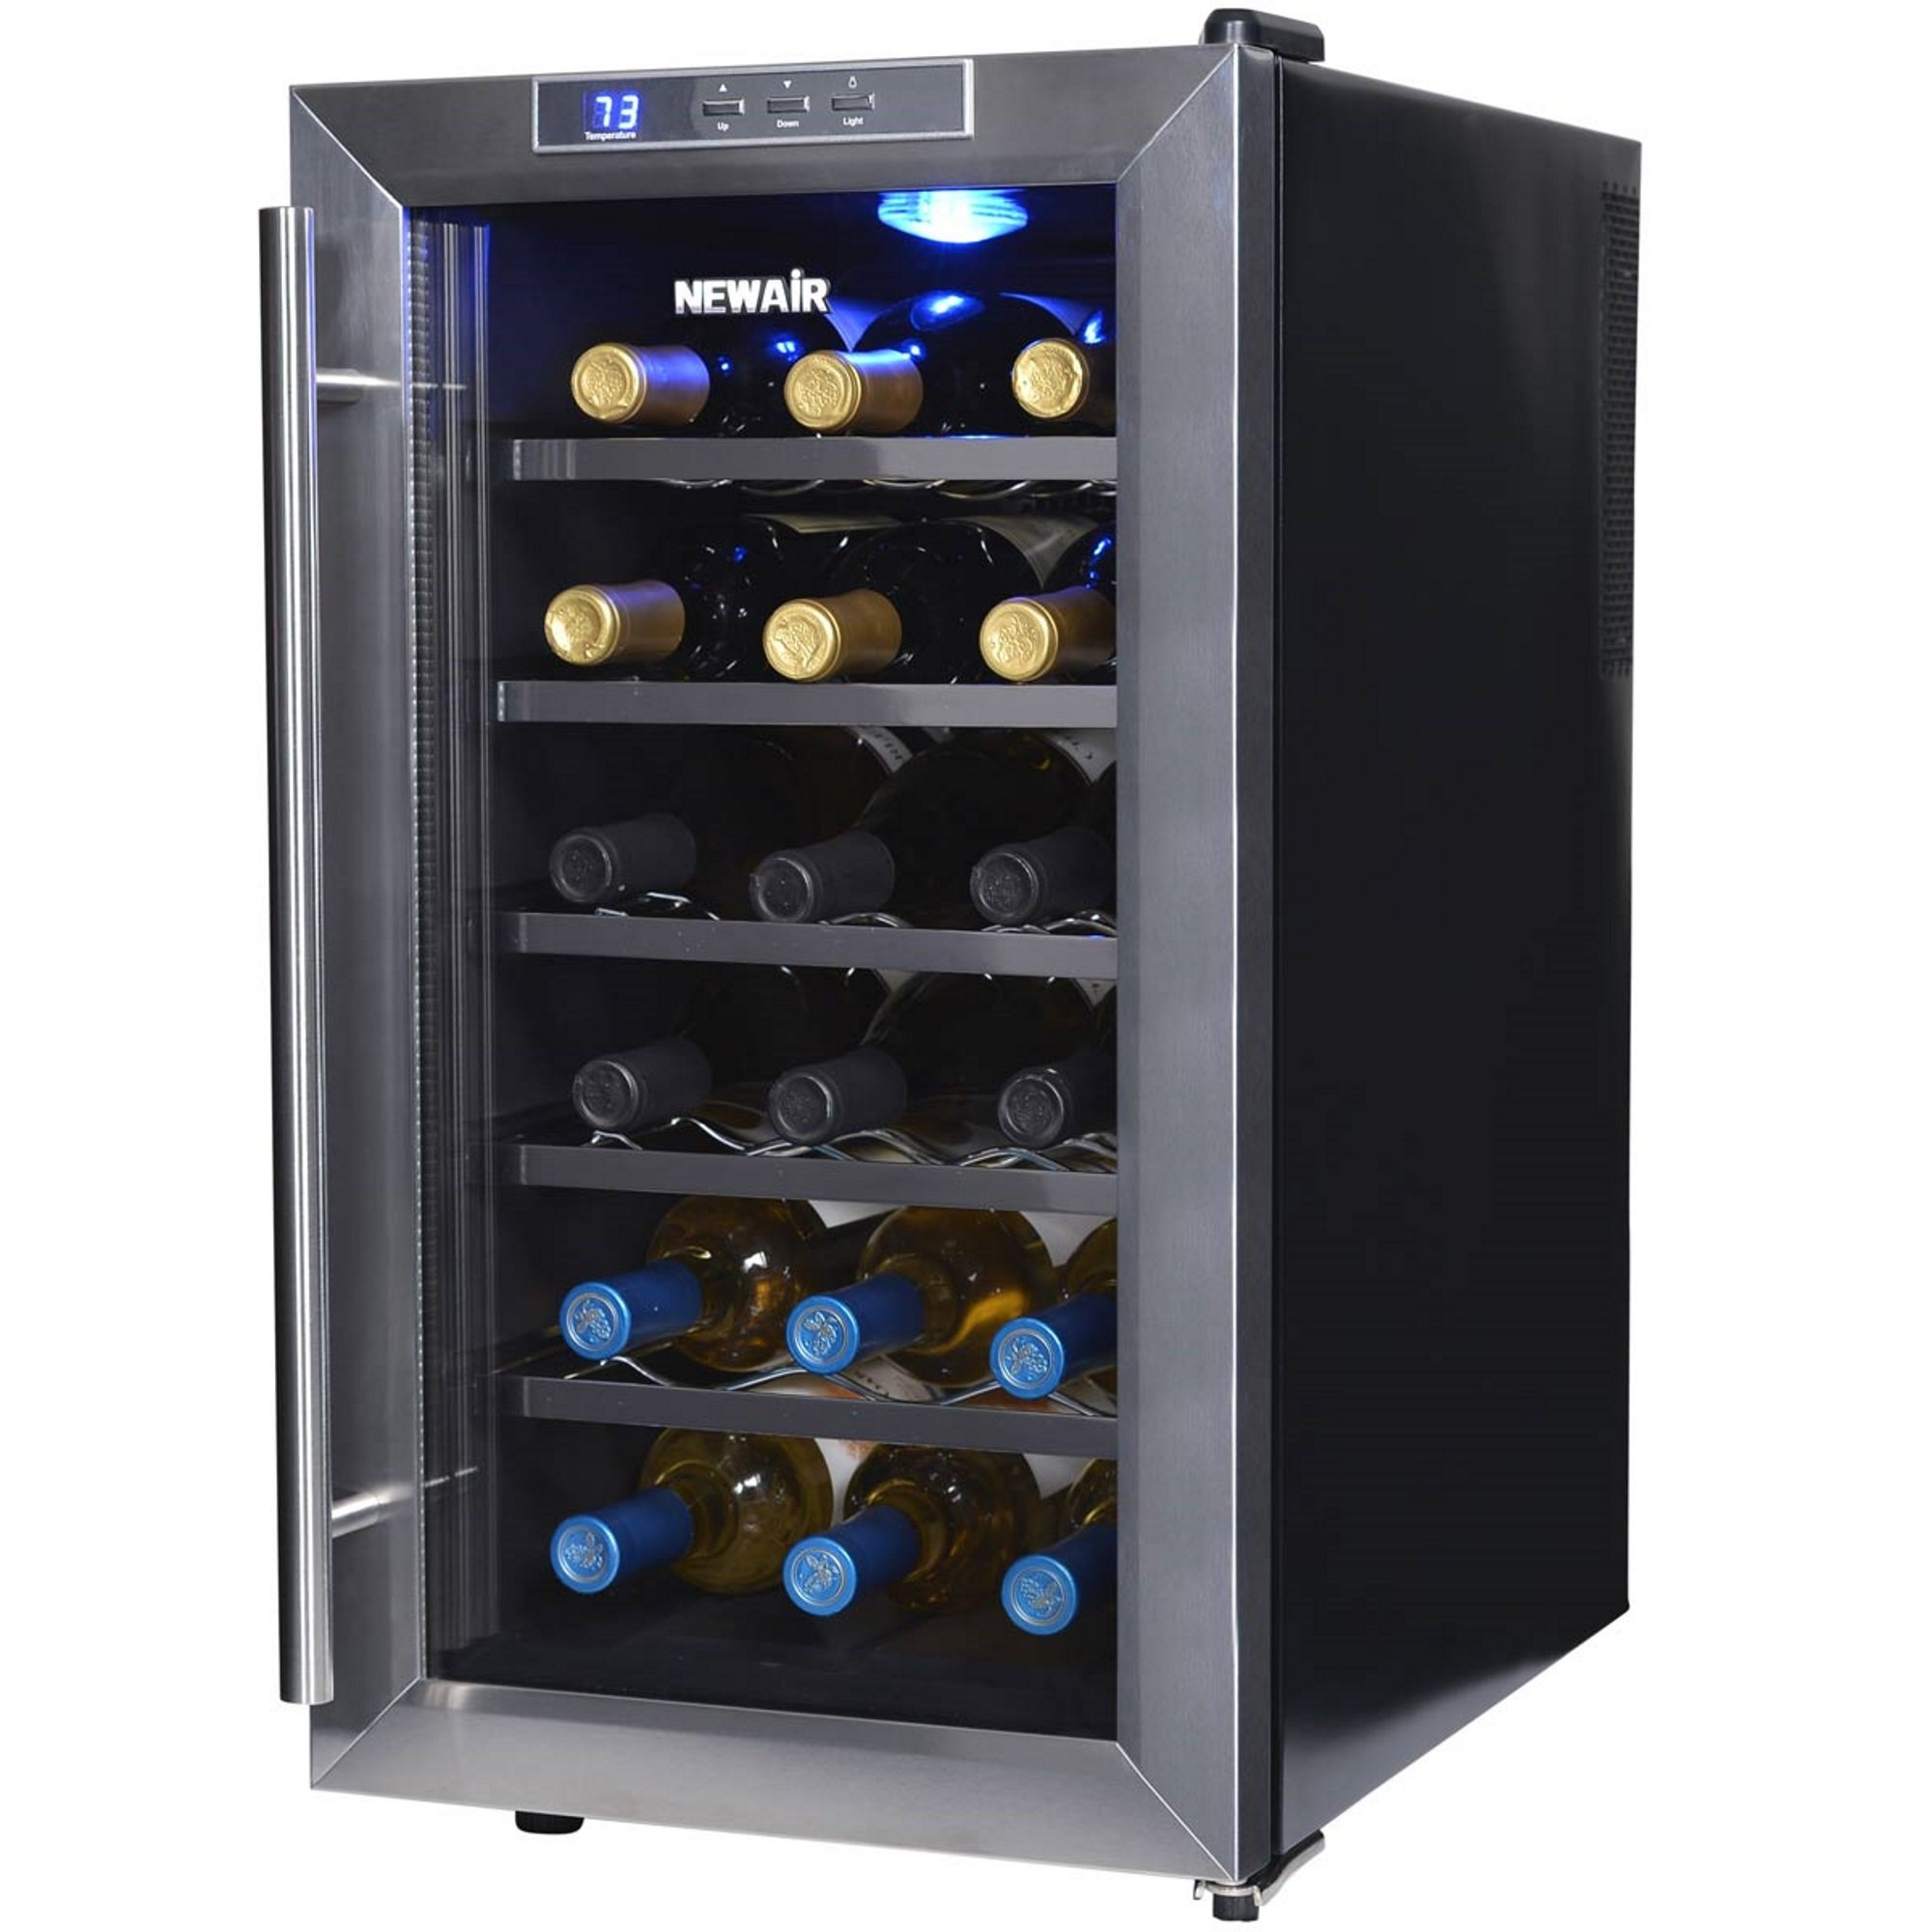 NewAir AW-181E 18 Bottle Thermoelectric Wine Cooler, Black by NewAir